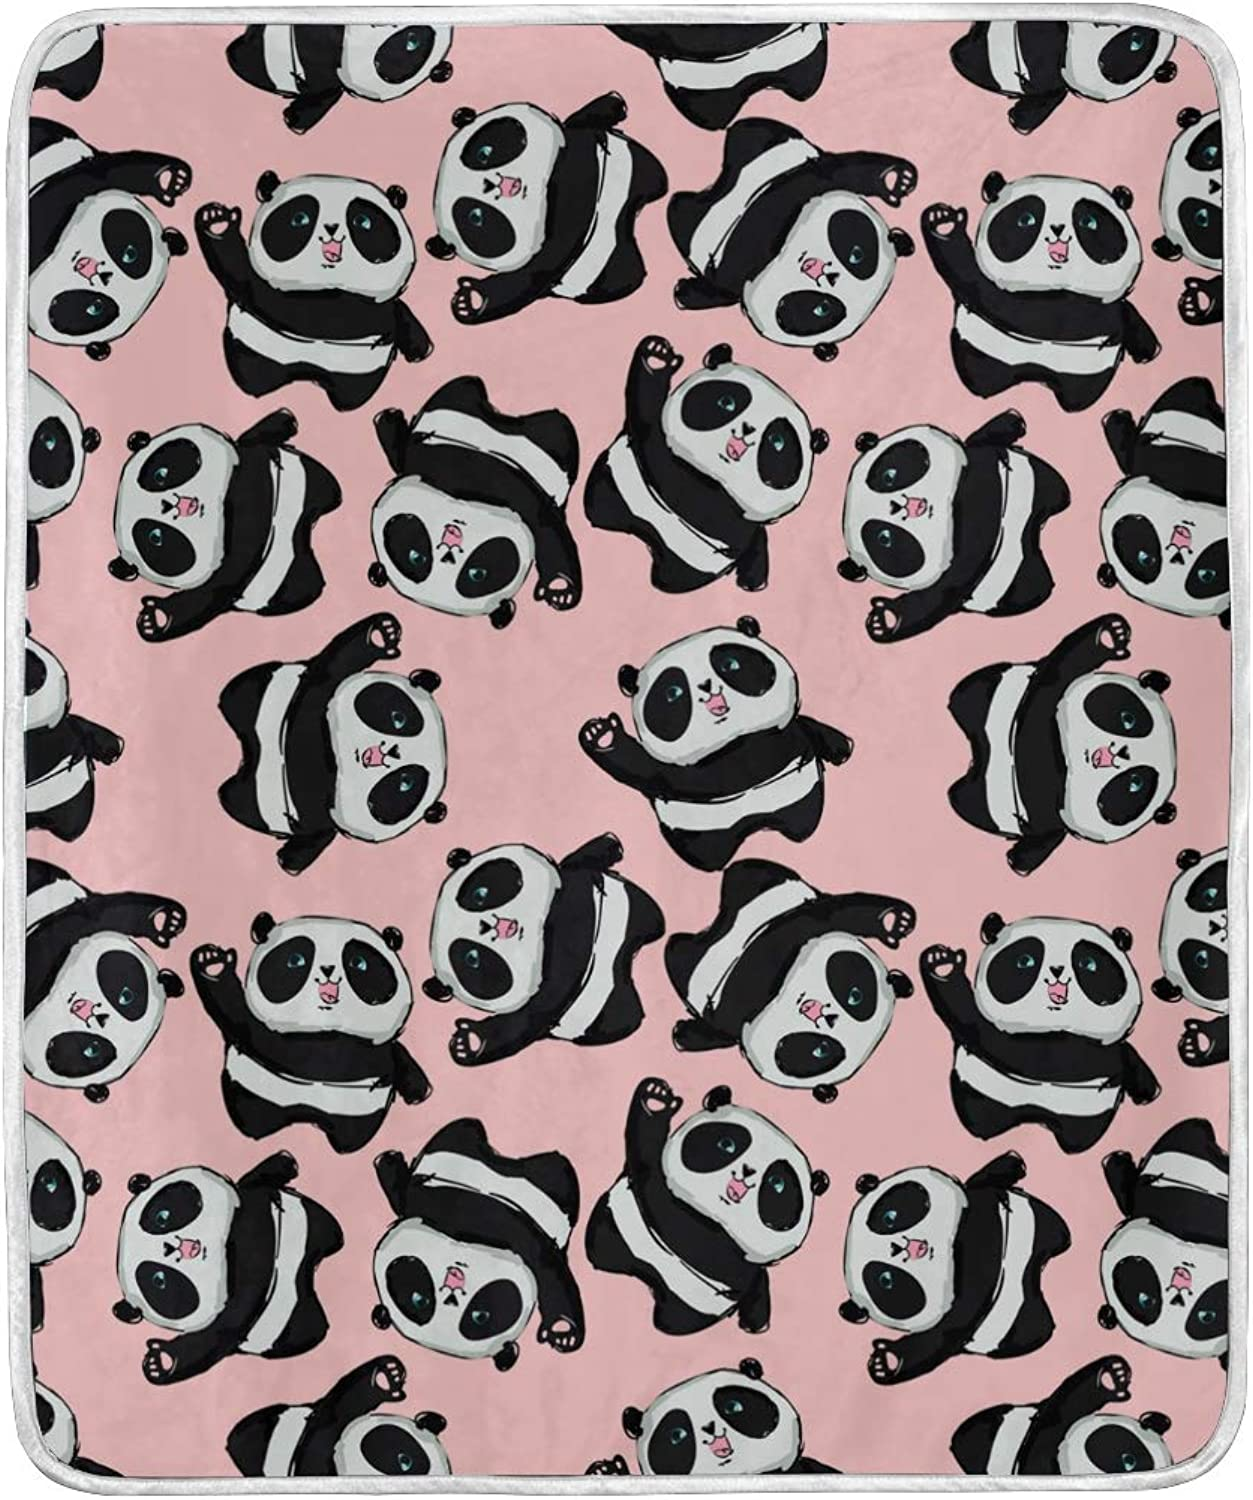 WIHVE Throw Blanket Black and White Panda Lightweight Warm Cozy Microfiber Blankets Travelling Camping 50 x 60 Inch, All Season for Couch or Bed